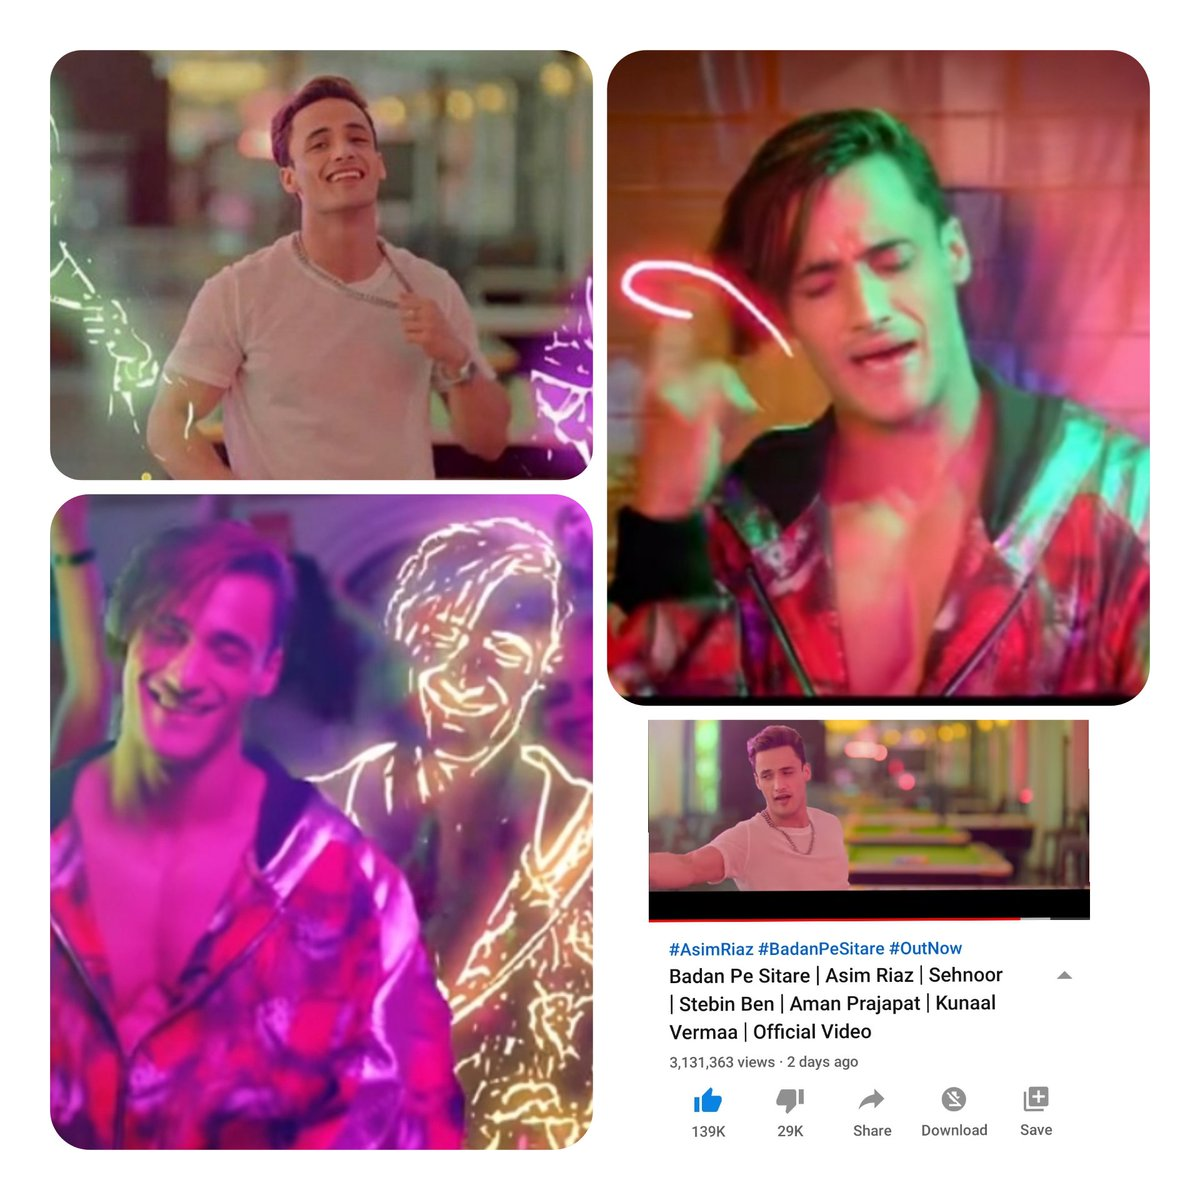 Asim givs out d retro vibe in ths song #BadanPeSitare sung by #StebinBen  I'm  loving his voice now. 🥰  It's all abt dance, Asim's swag,style his awsm lip sync, romance n all. Stream ths song share d link n increase d vws Song link :-  https://t.co/GVZiFClwU0 #AsimRiaz  👑💎 https://t.co/ov9yCT5ZkM